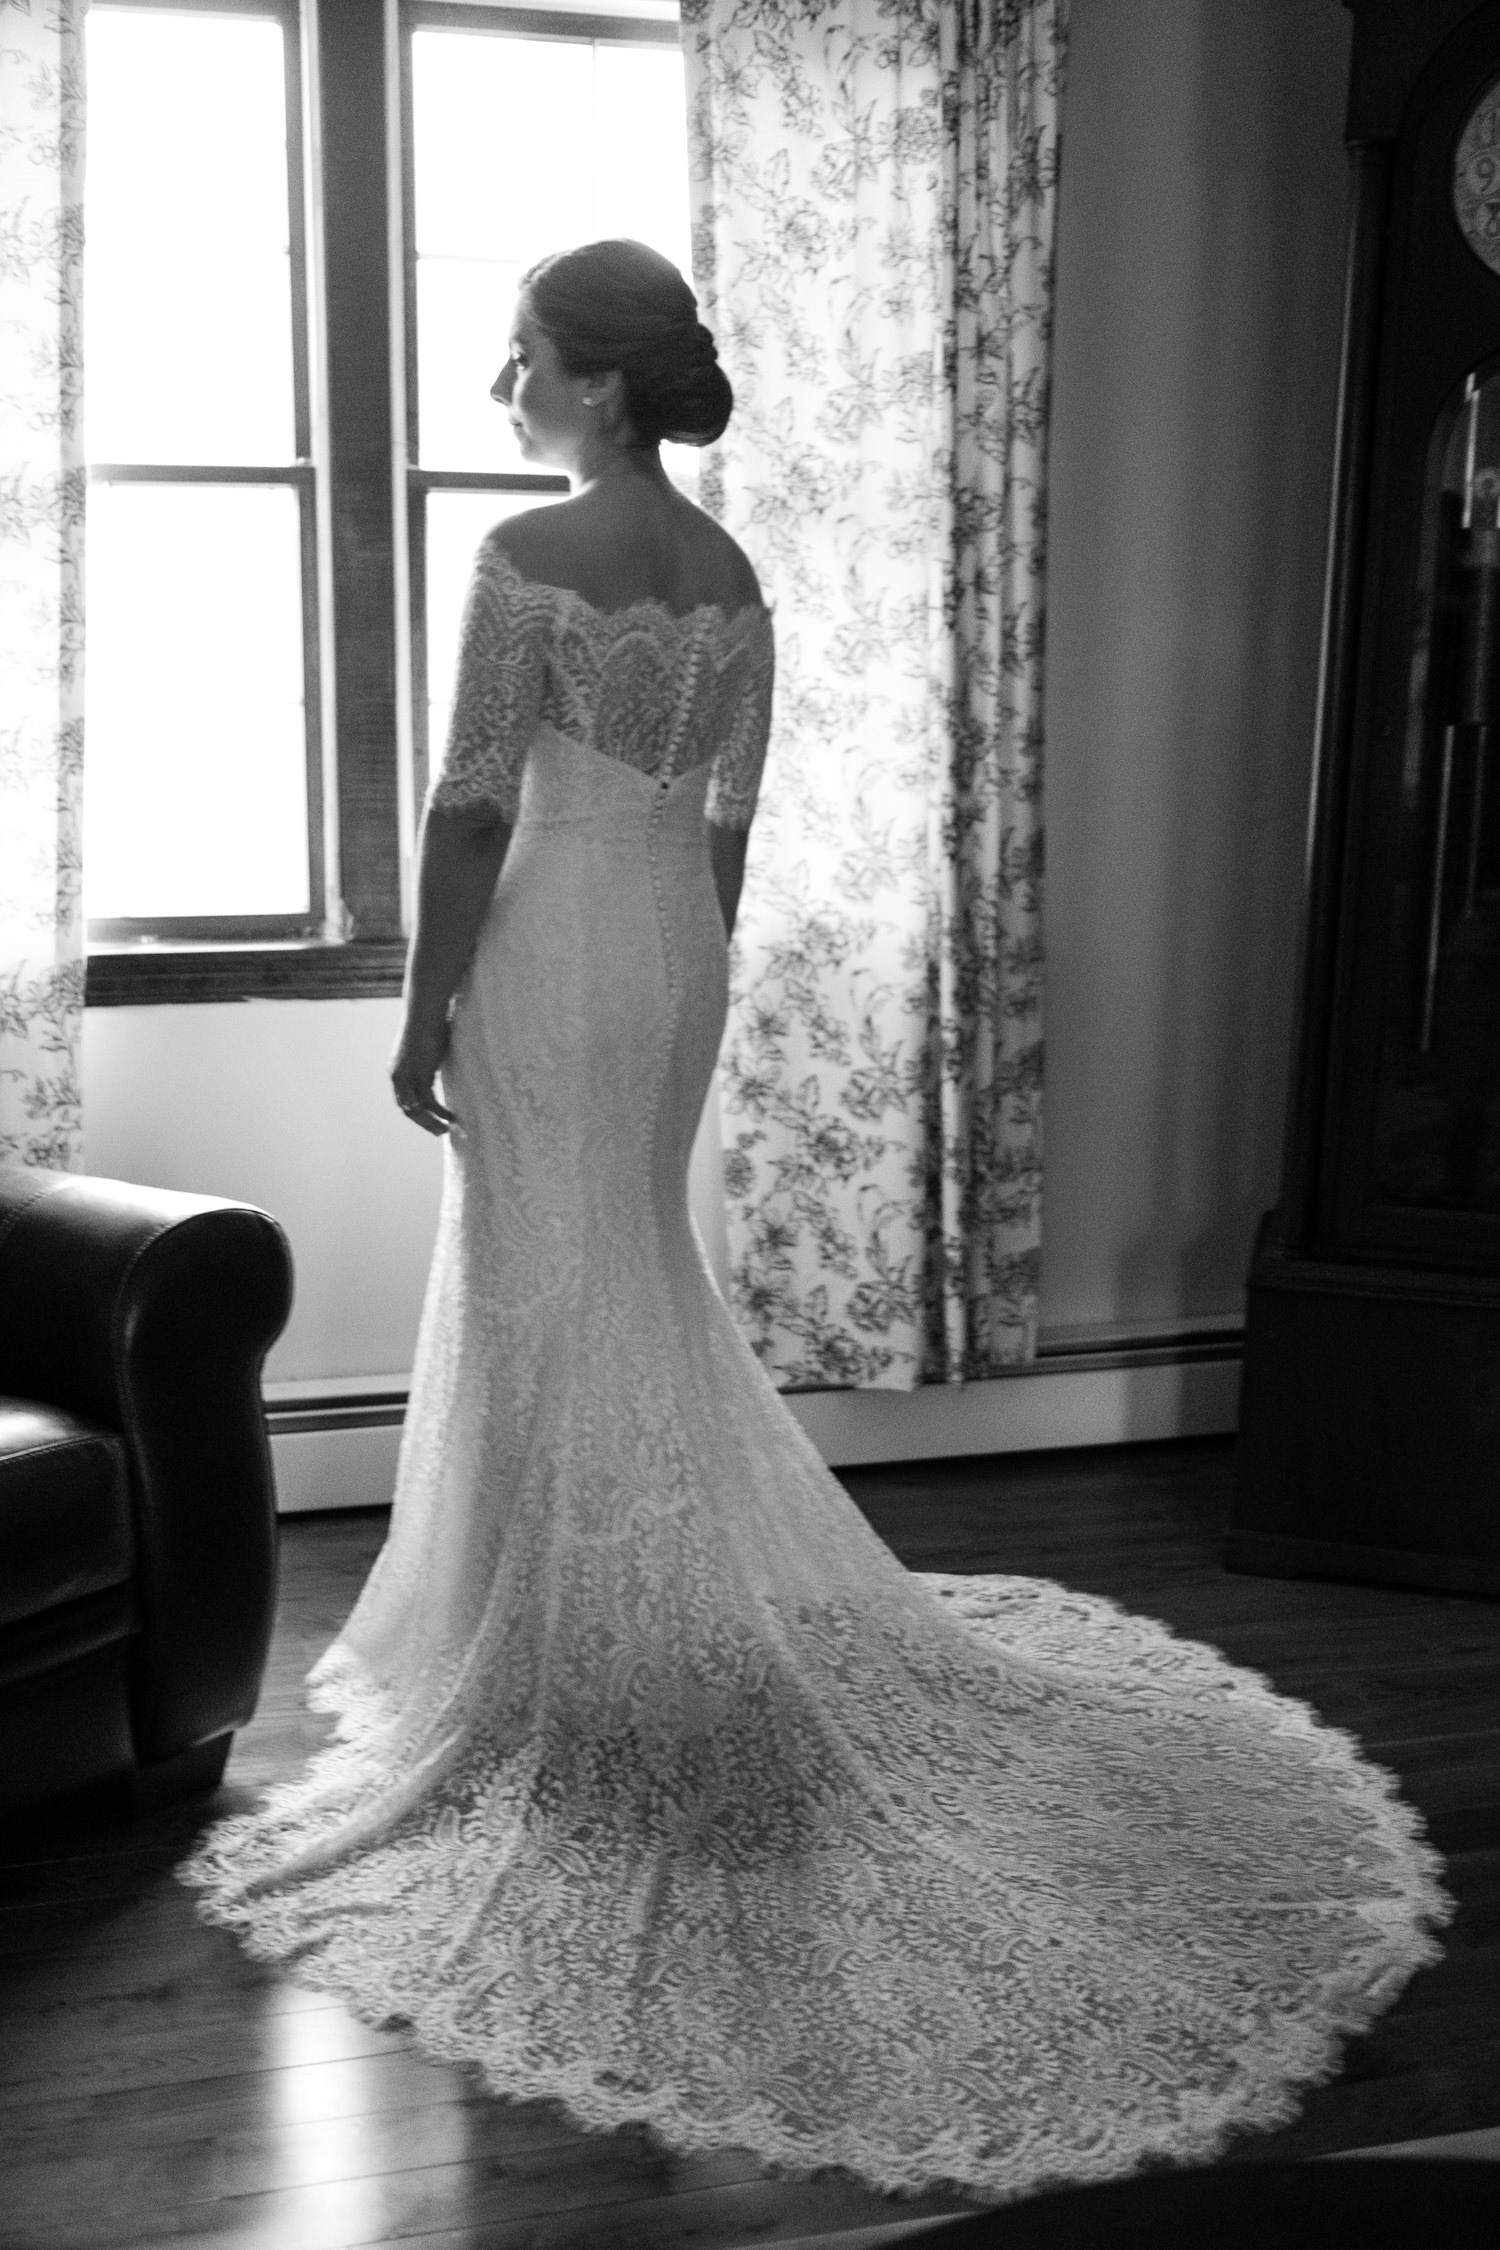 Kate_Phil_Currier_Museum_Wedding_New Hampshire-13.jpg